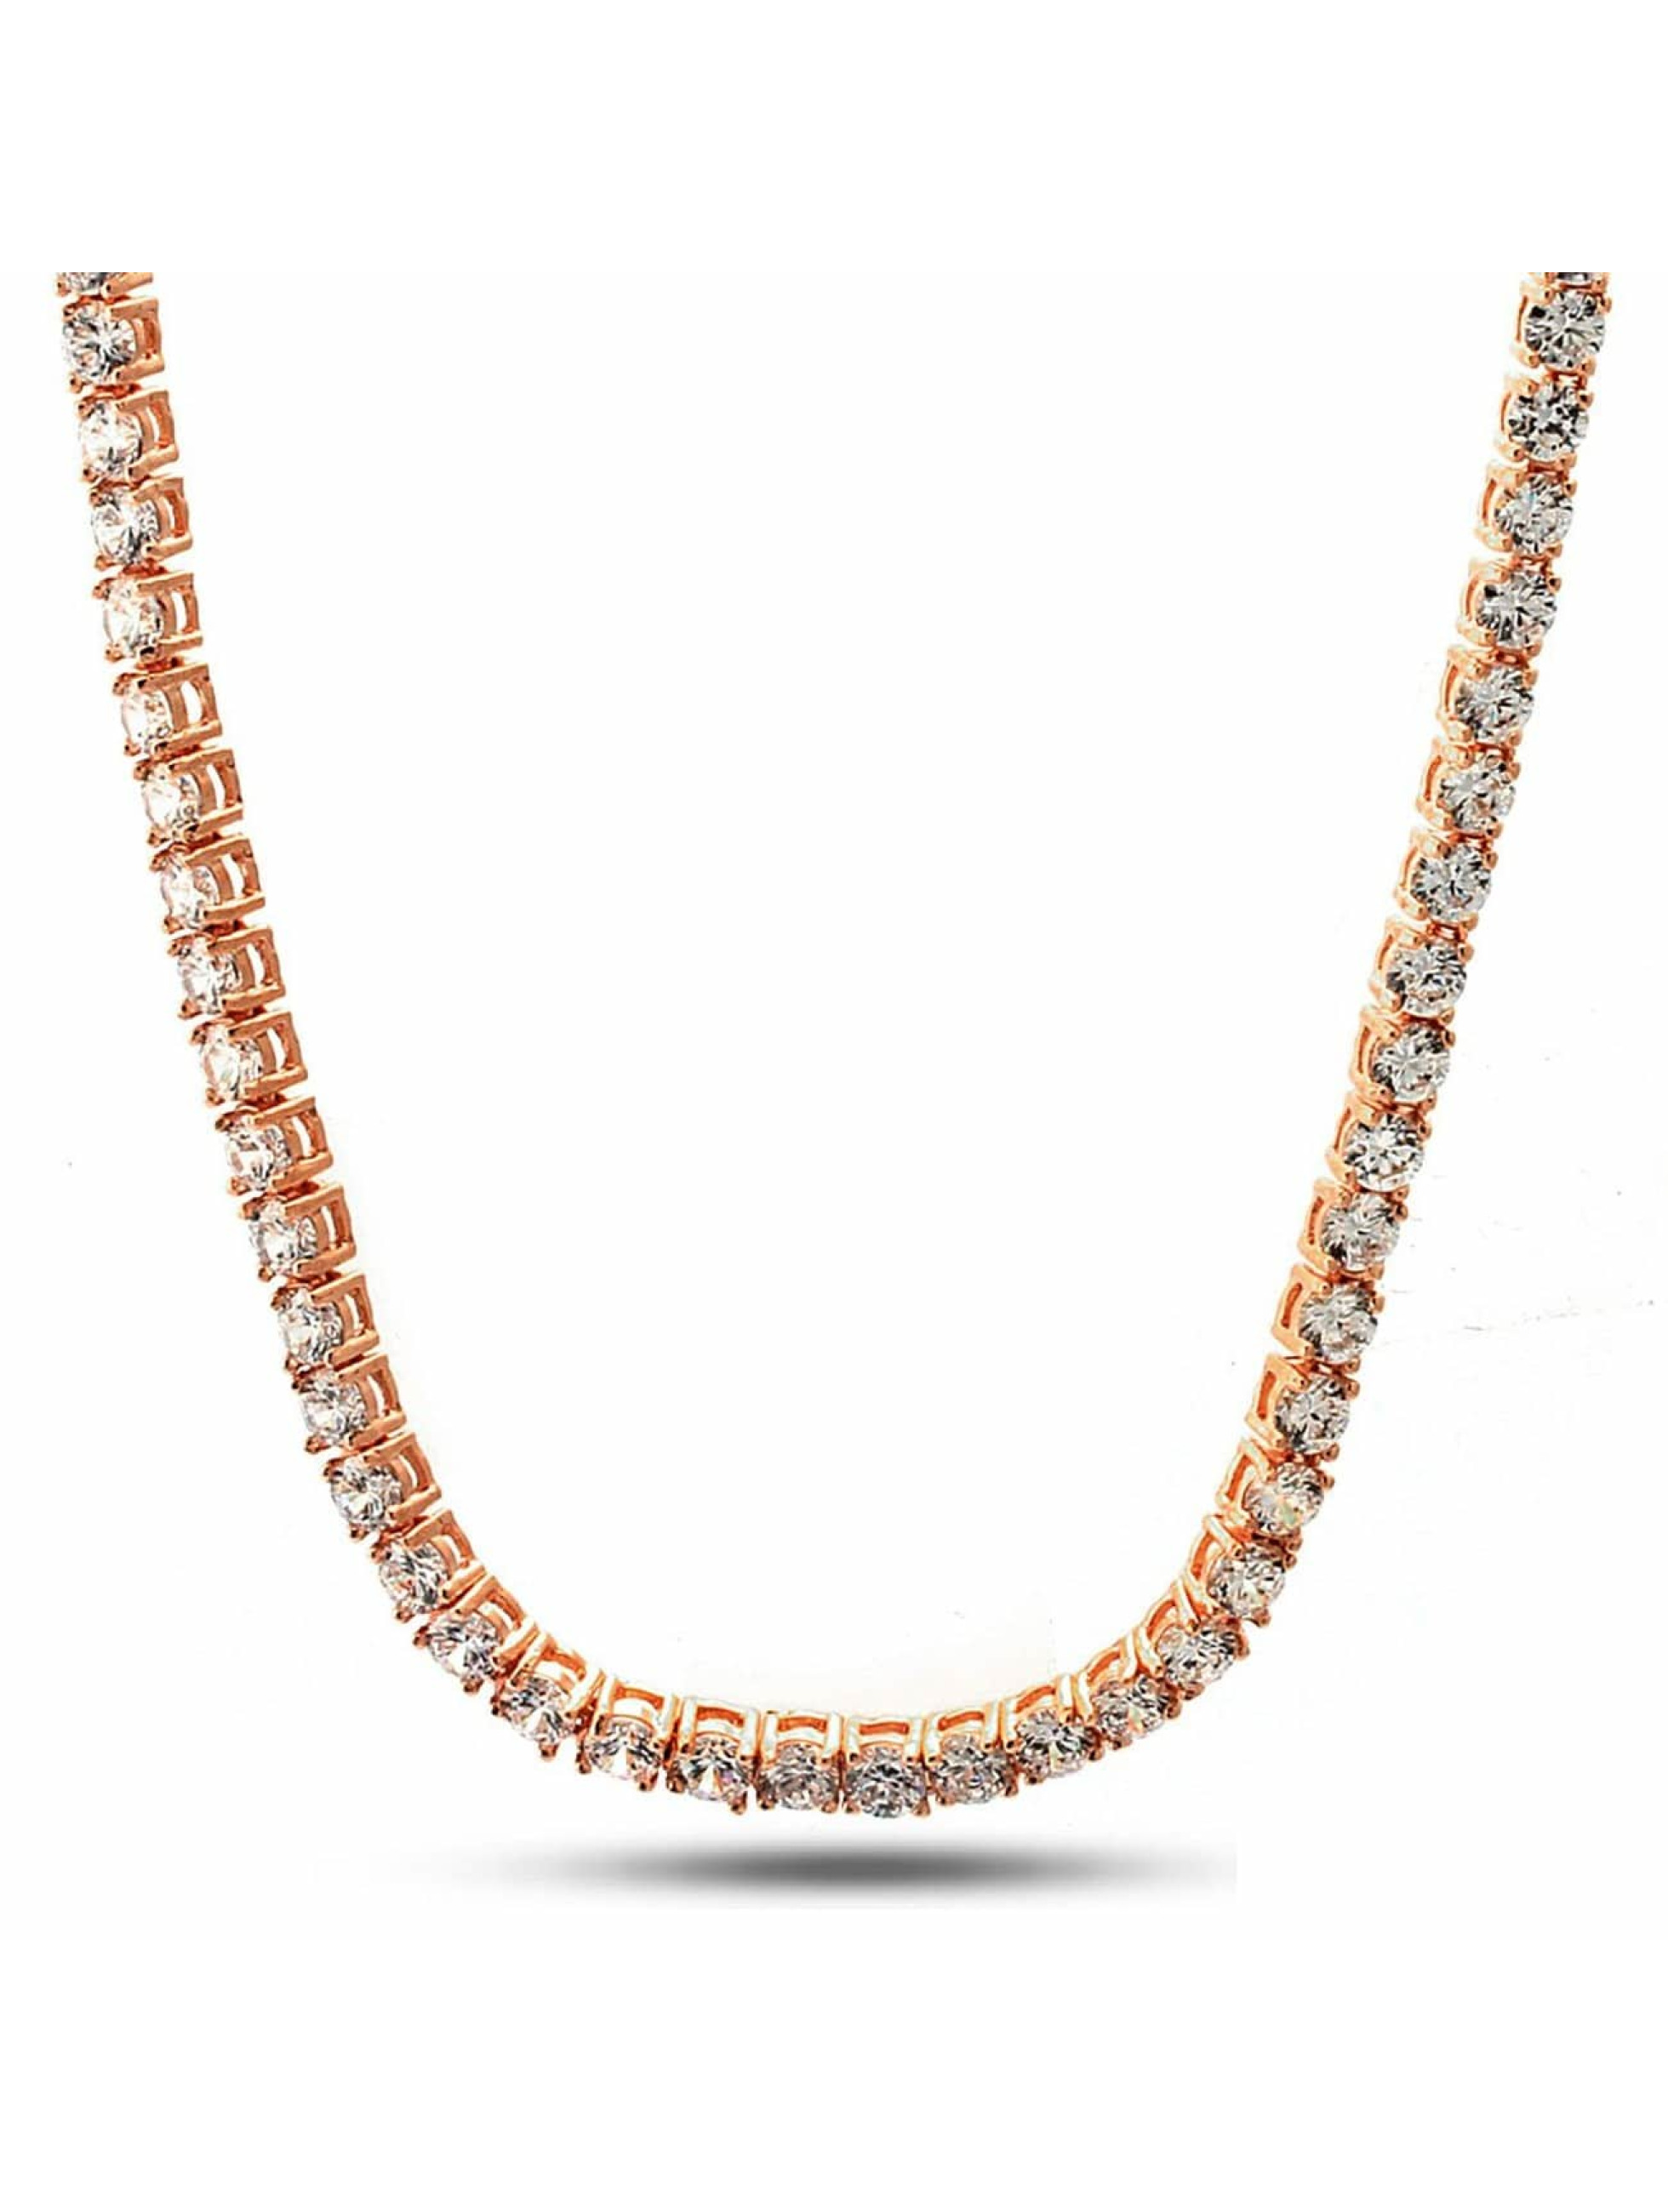 KING ICE Kette Gold_Plated 5mm Single Row CZ Pharaoh goldfarben